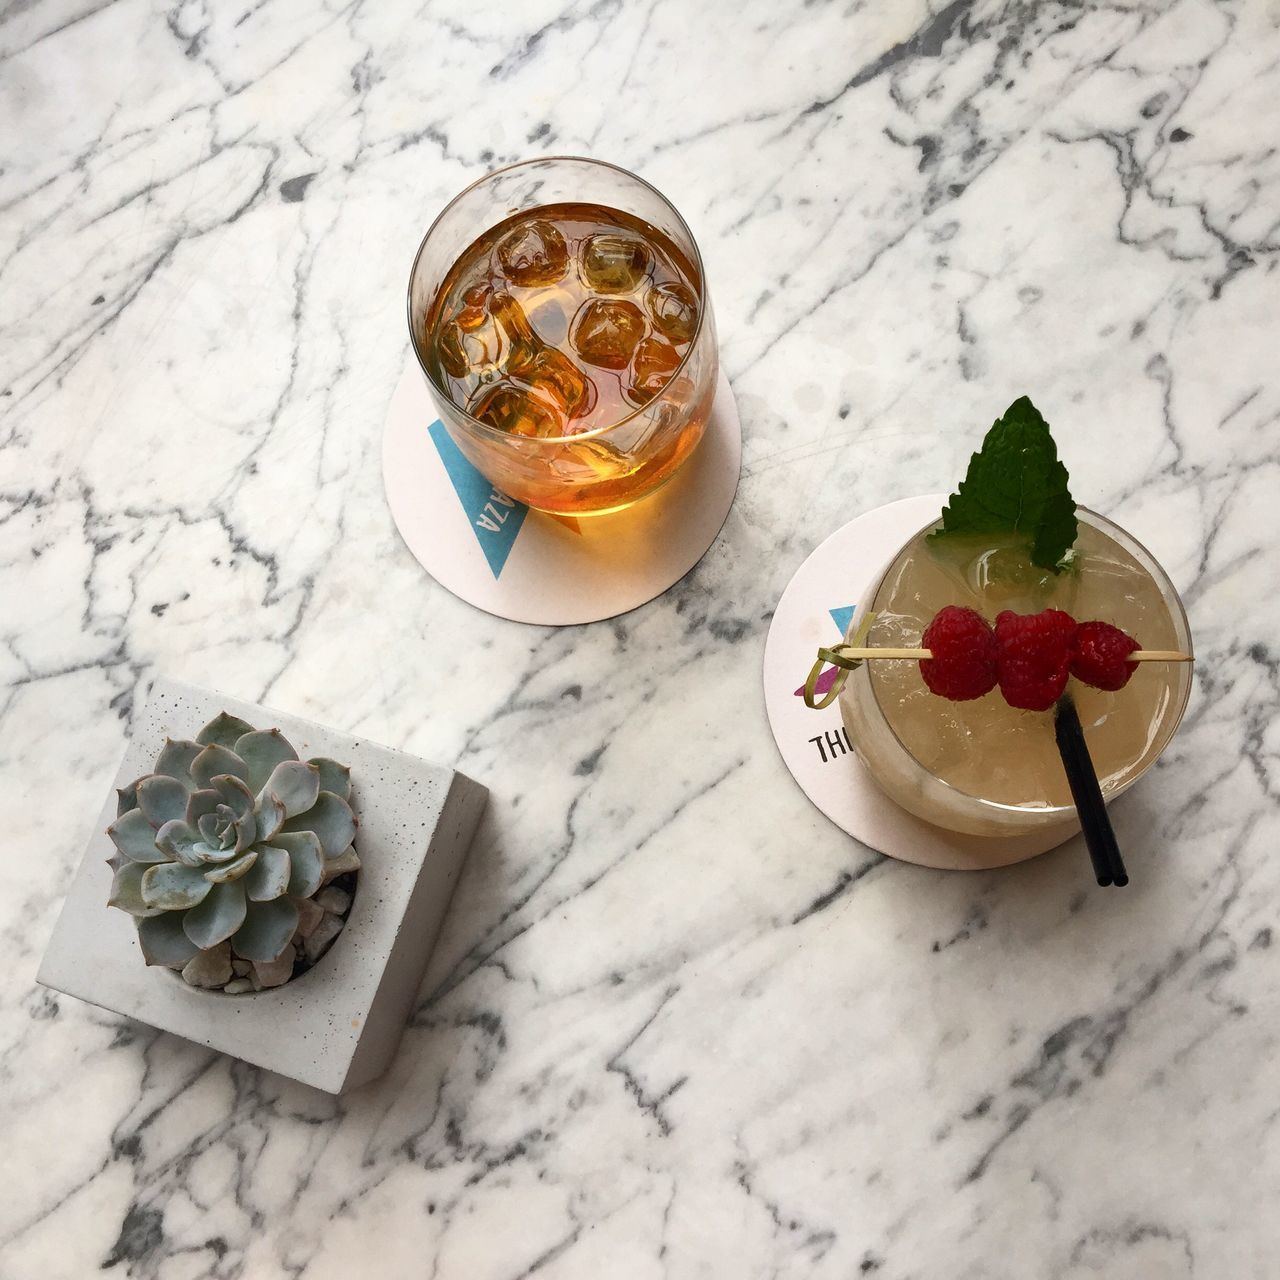 Drinks Drinks Cocktails Marble